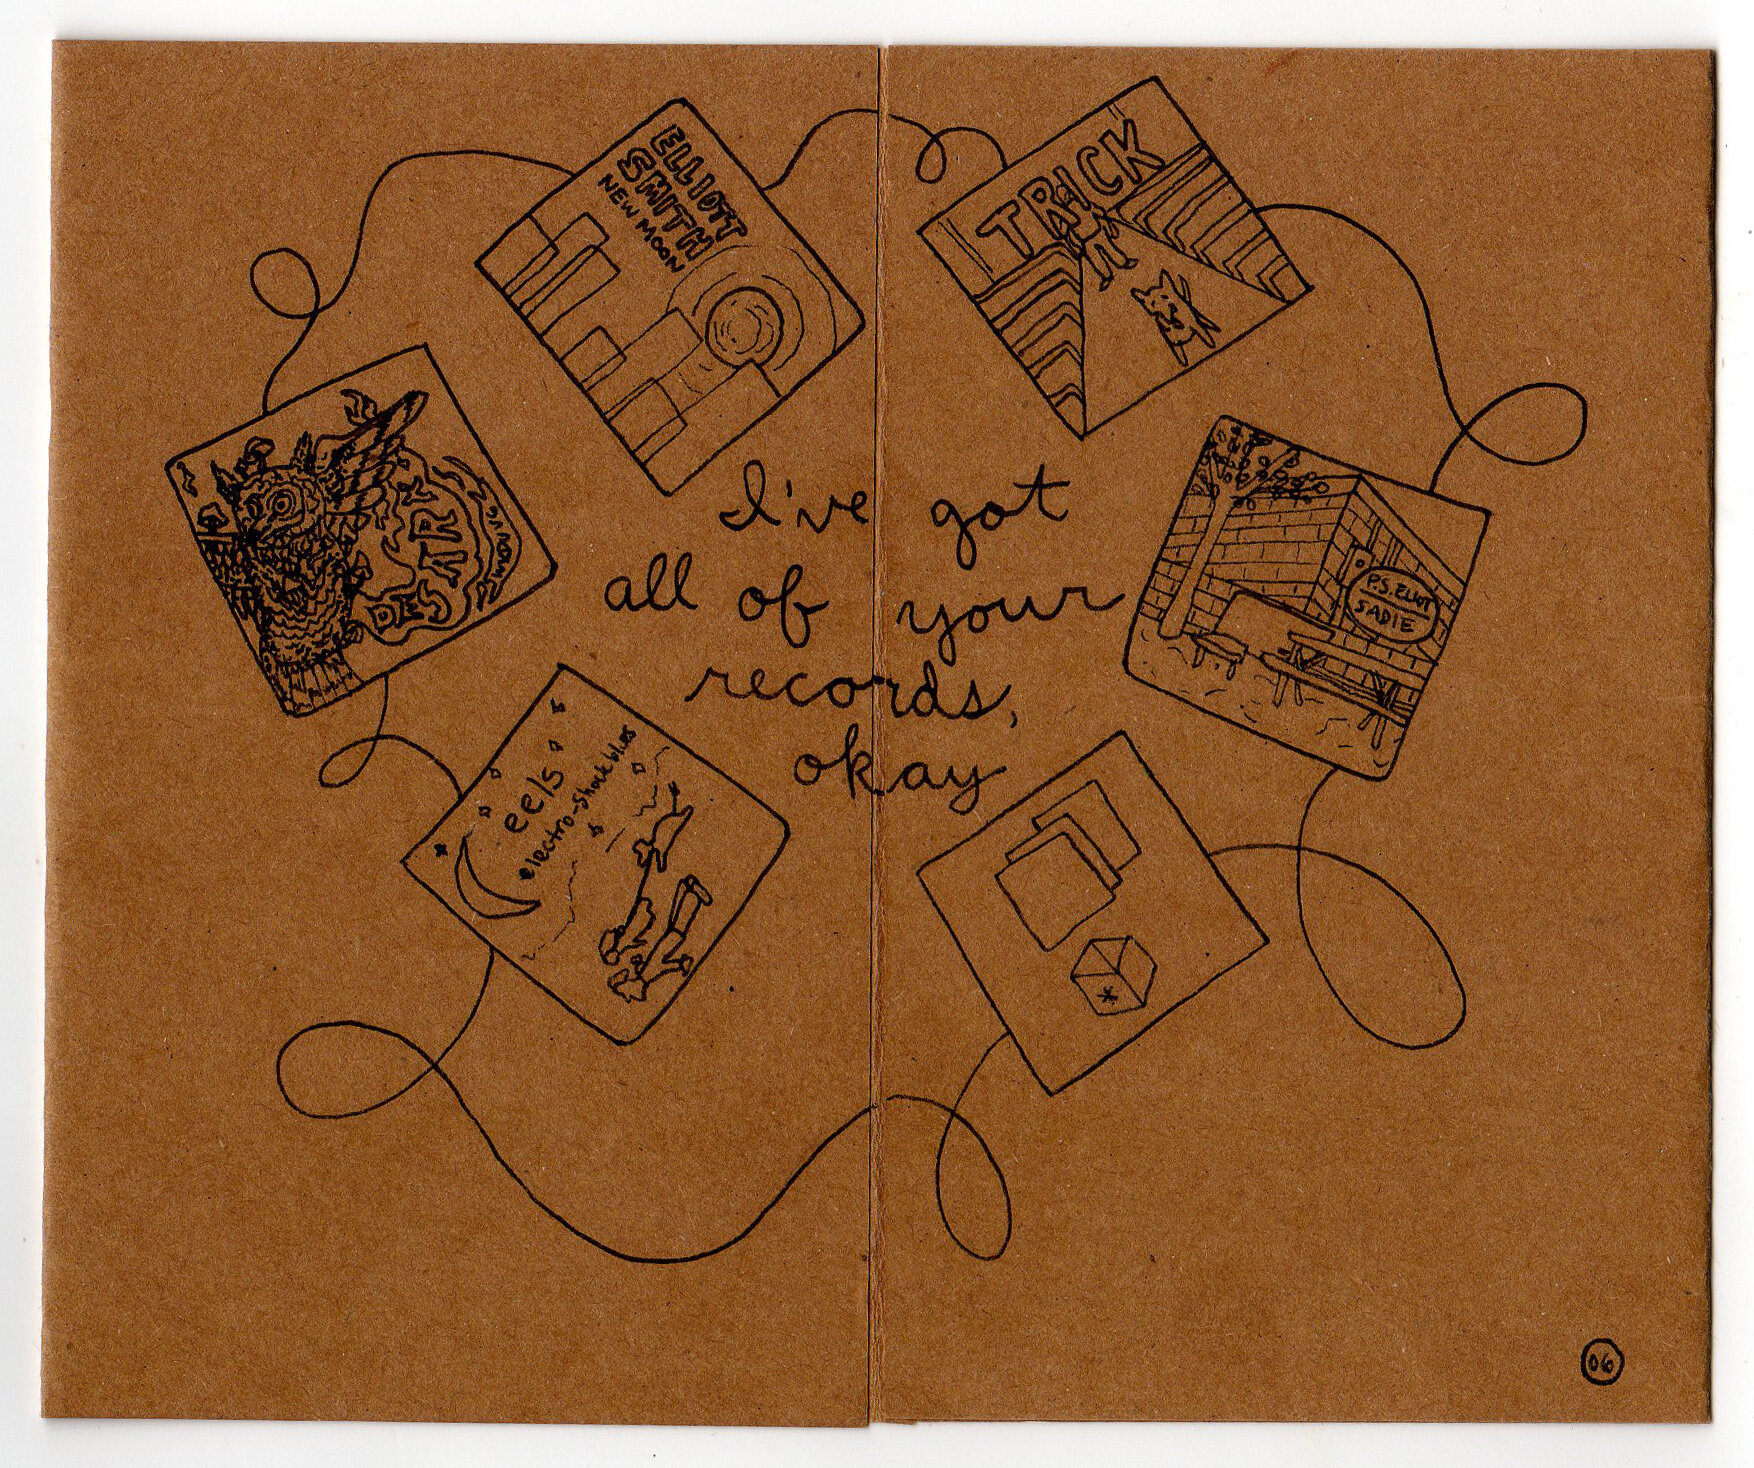 mix cd booklet for a friend, p.s. eliot lyrics